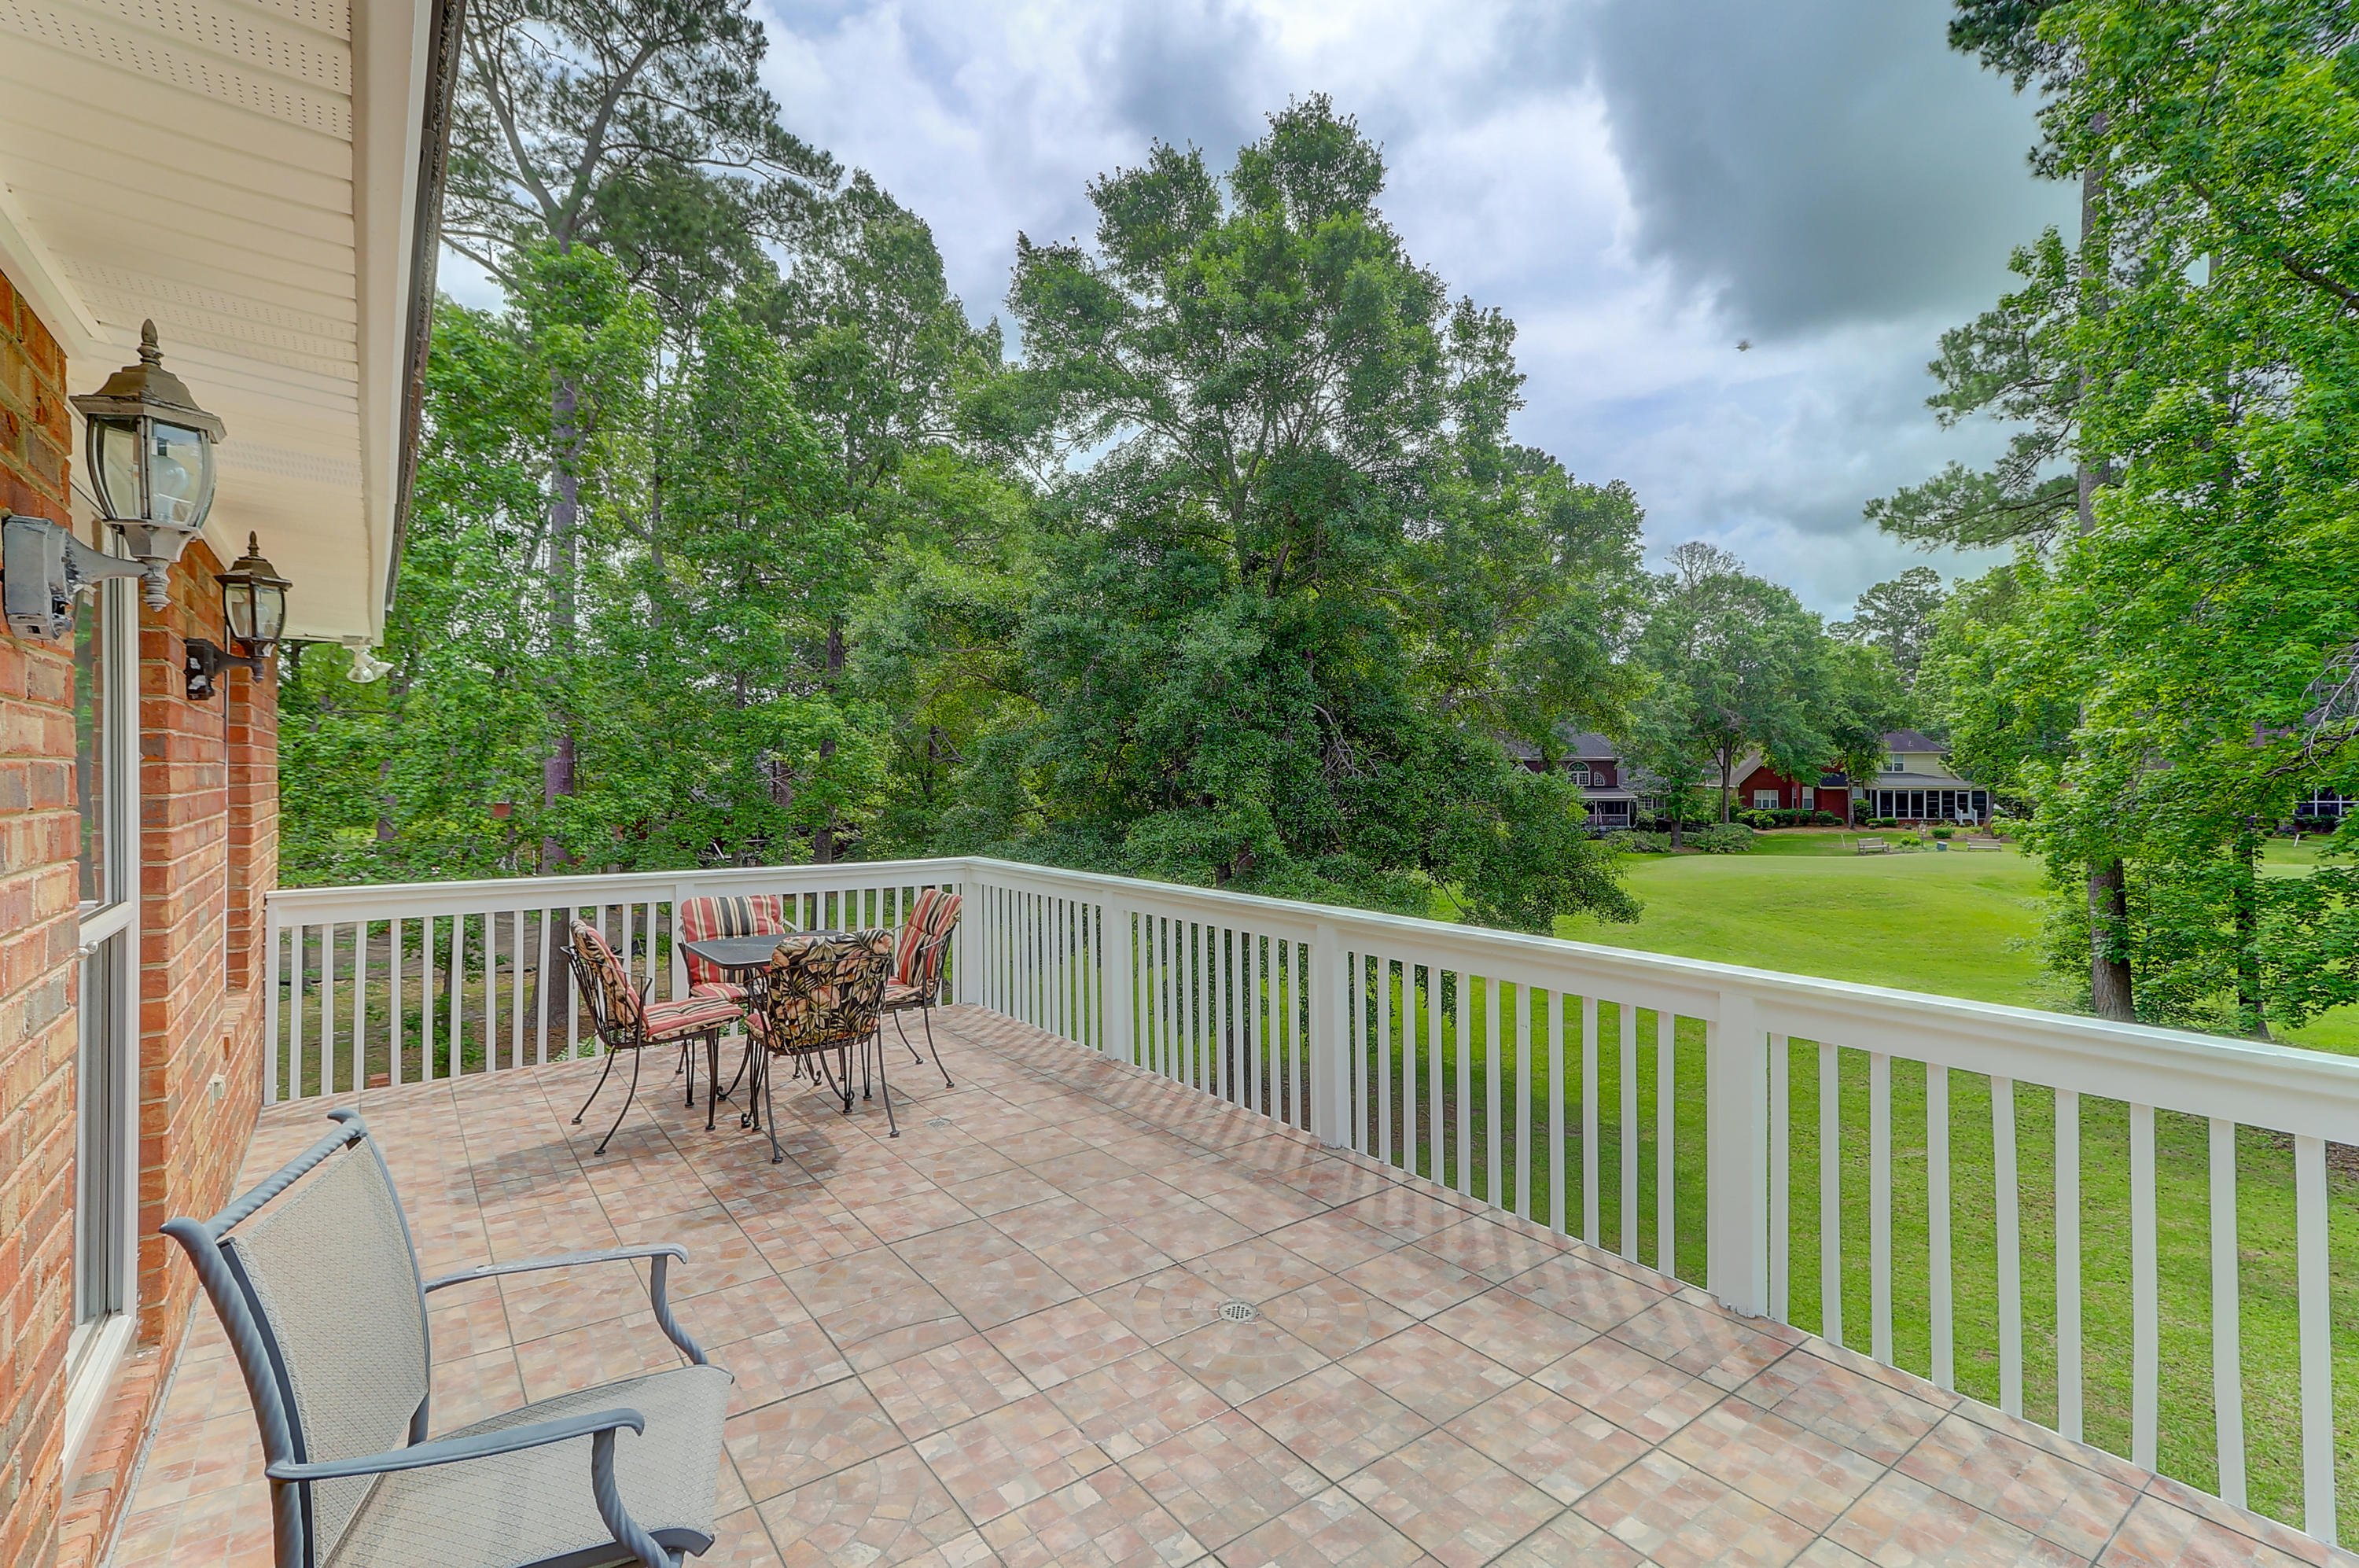 Coosaw Creek Country Club Homes For Sale - 8700 Fairway Woods, North Charleston, SC - 81